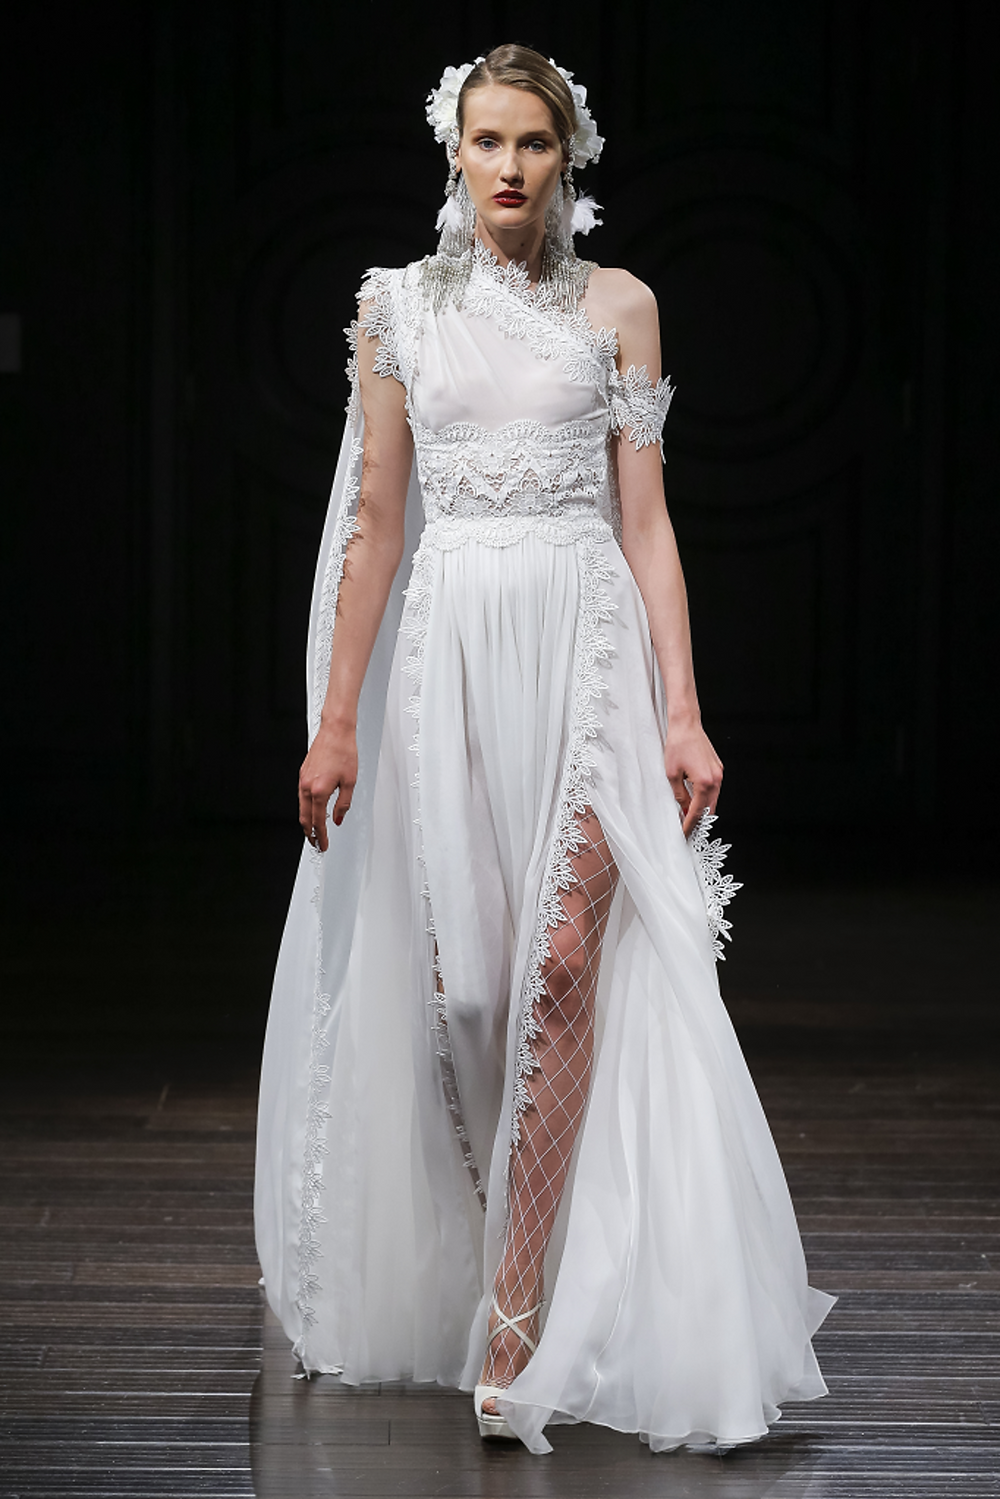 A detailed one shoulder, sheath wedding dress with floral embellishments